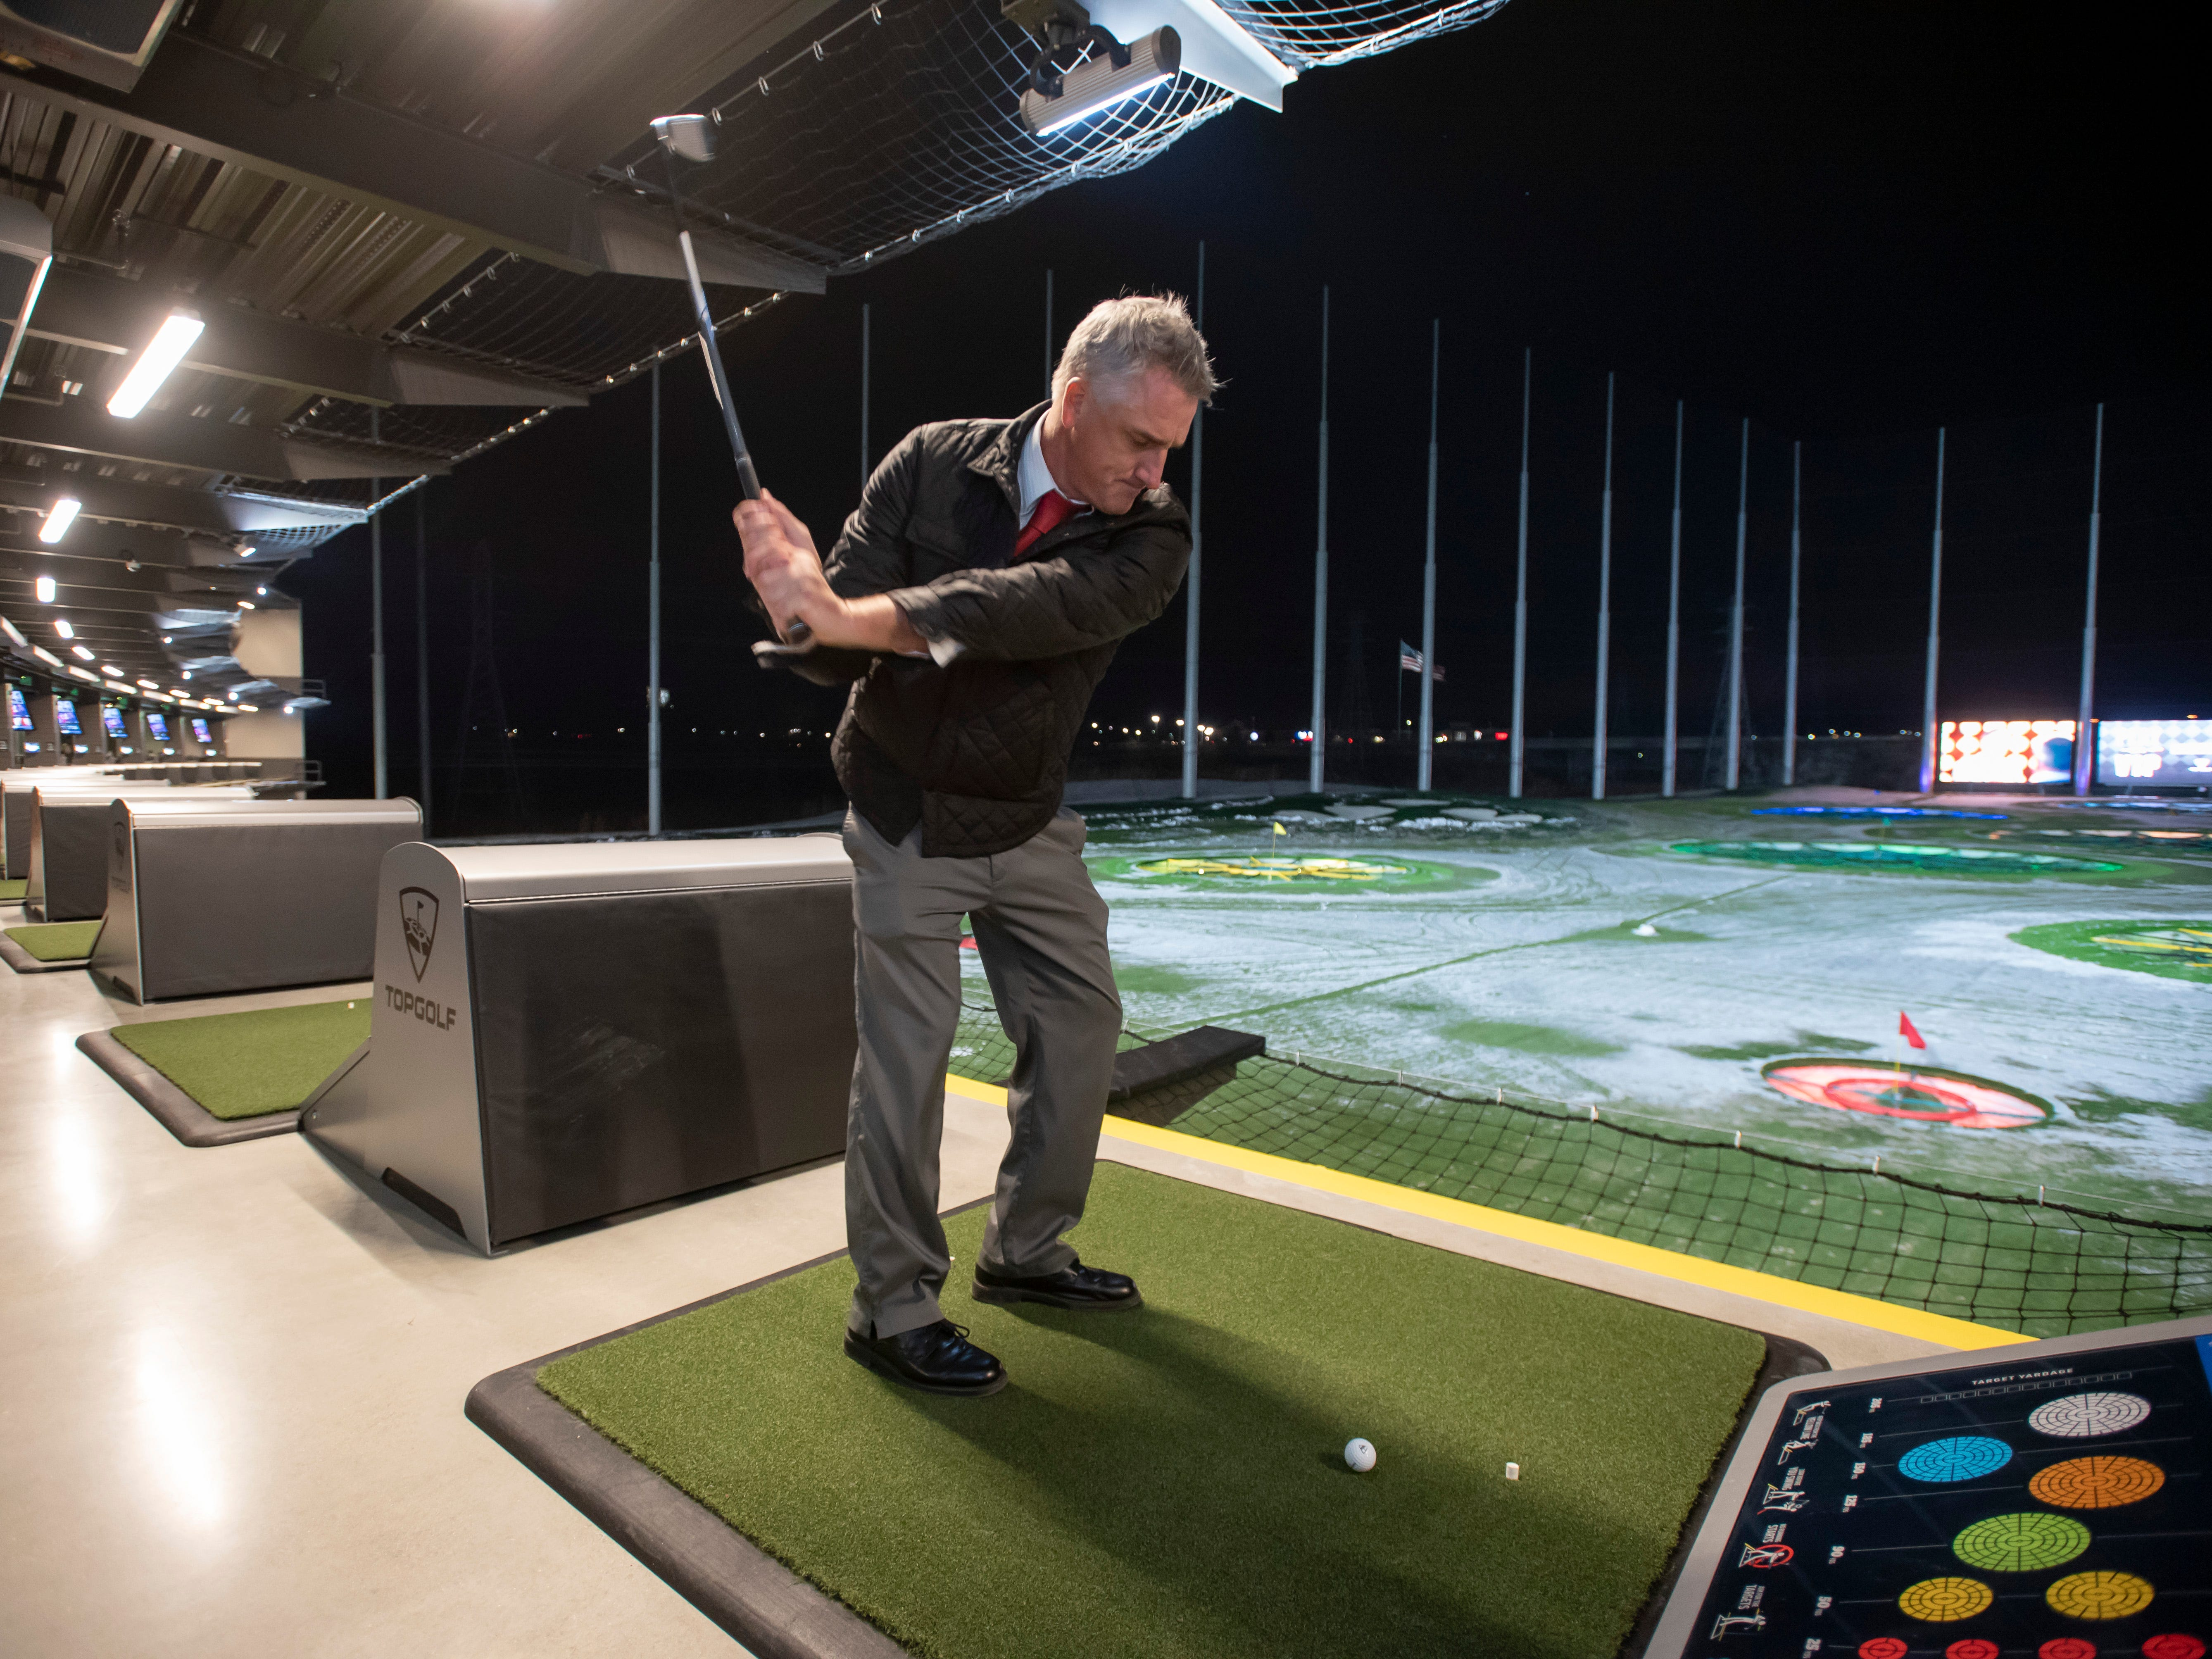 Golf instructor Dave Glasby tries out the driving range during a preview event at Topgolf, in Auburn Hills.